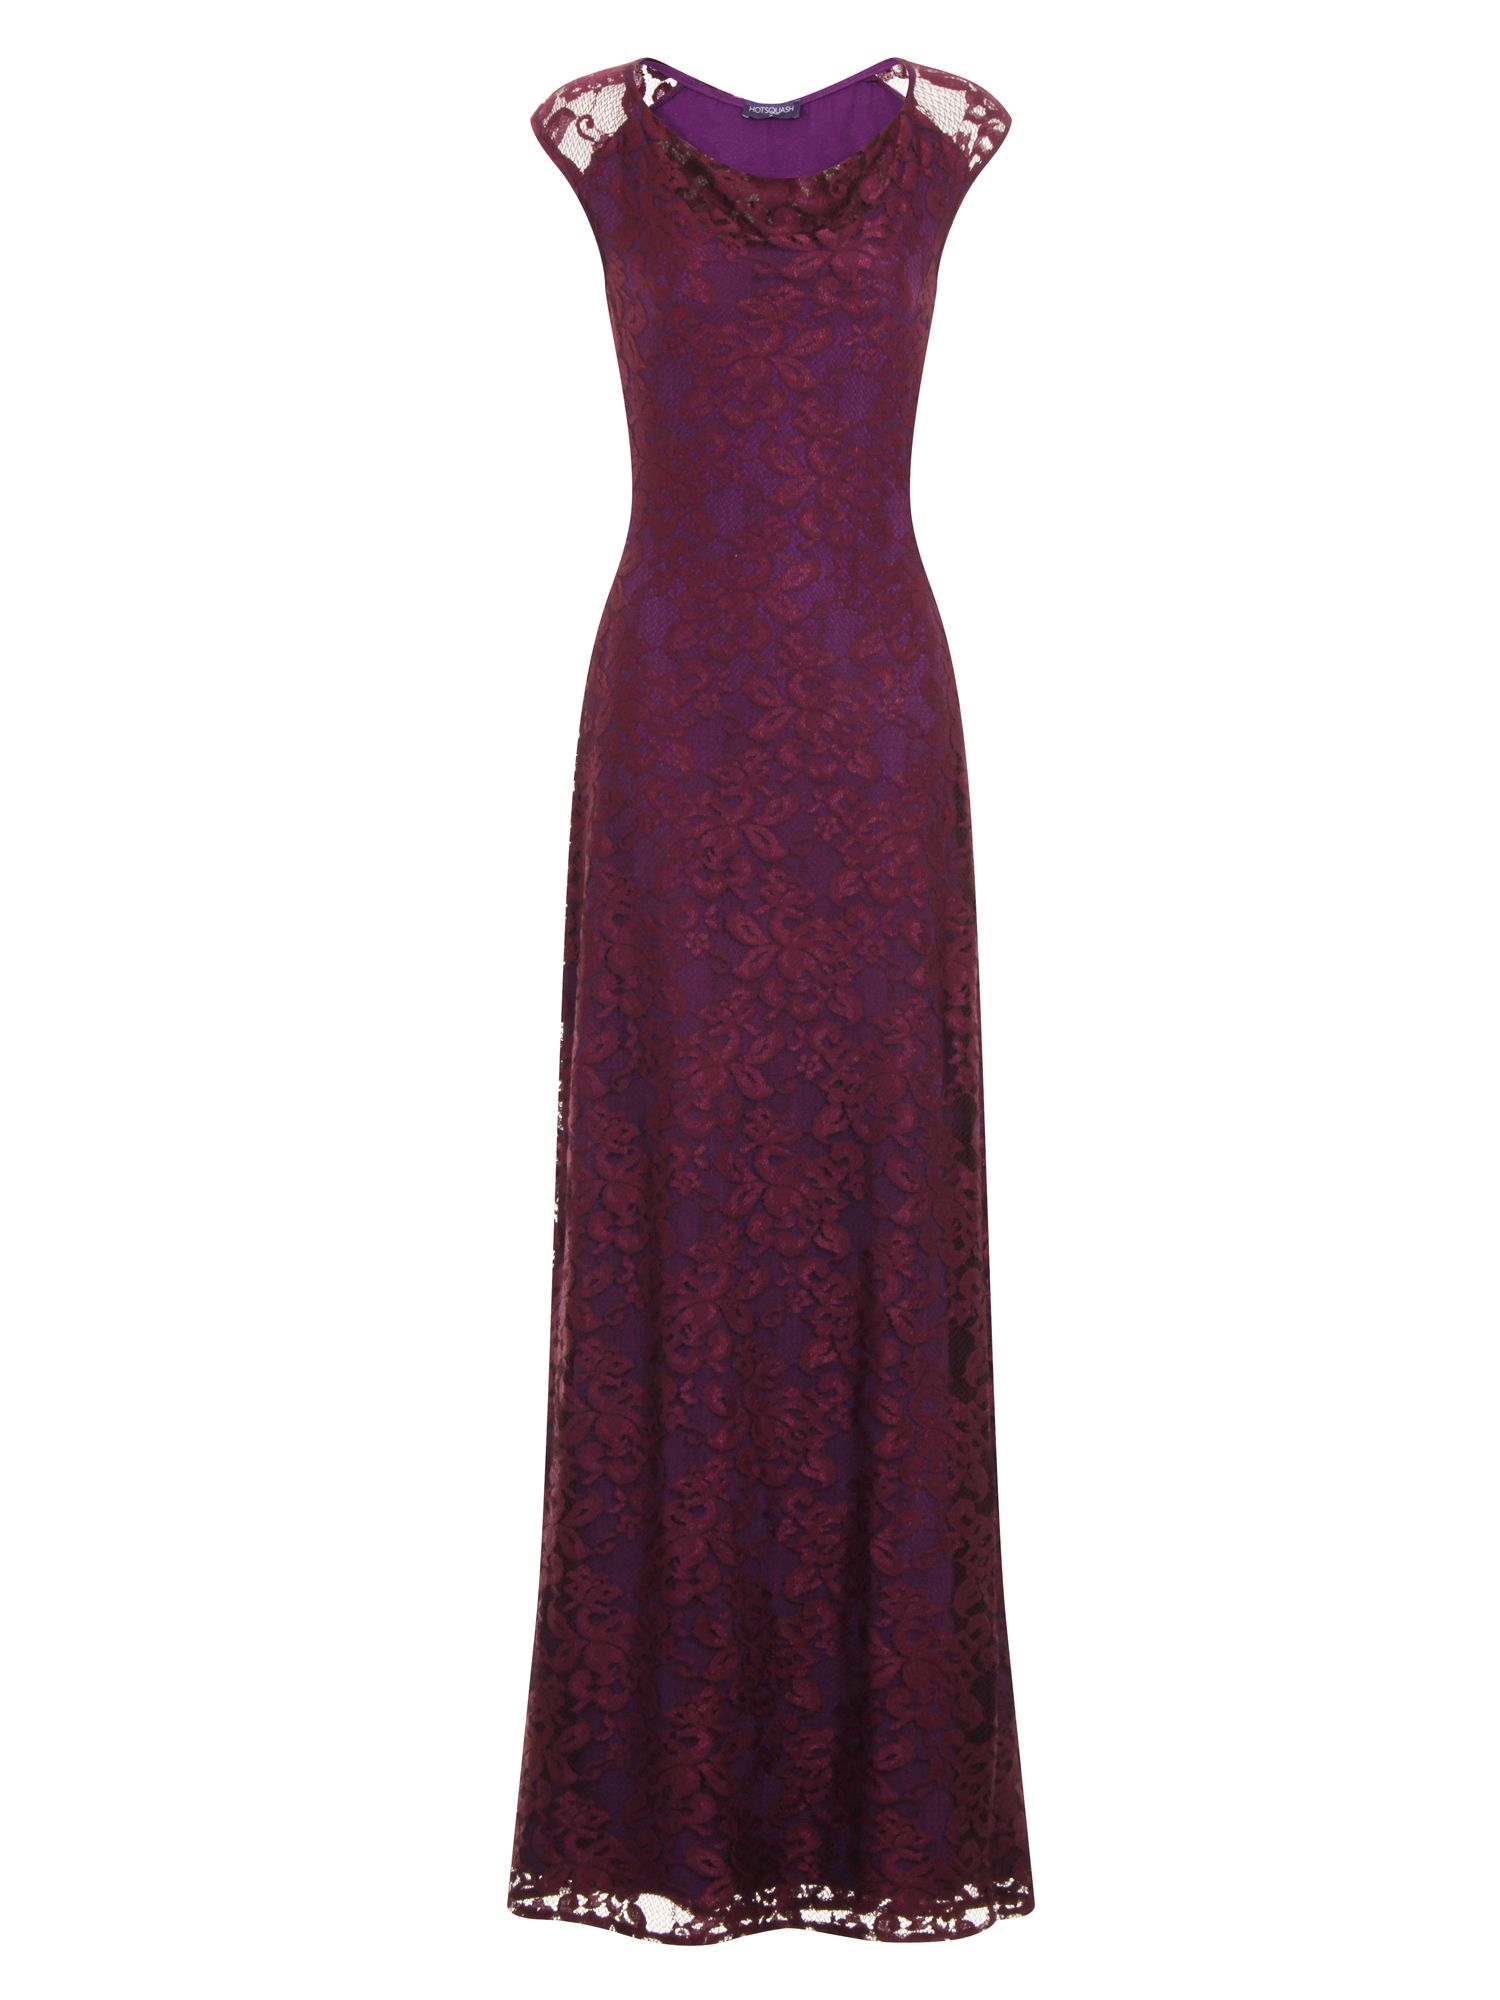 HotSquash Cowl Lace Maxi Dress in ThinHeat Fabric, Purple